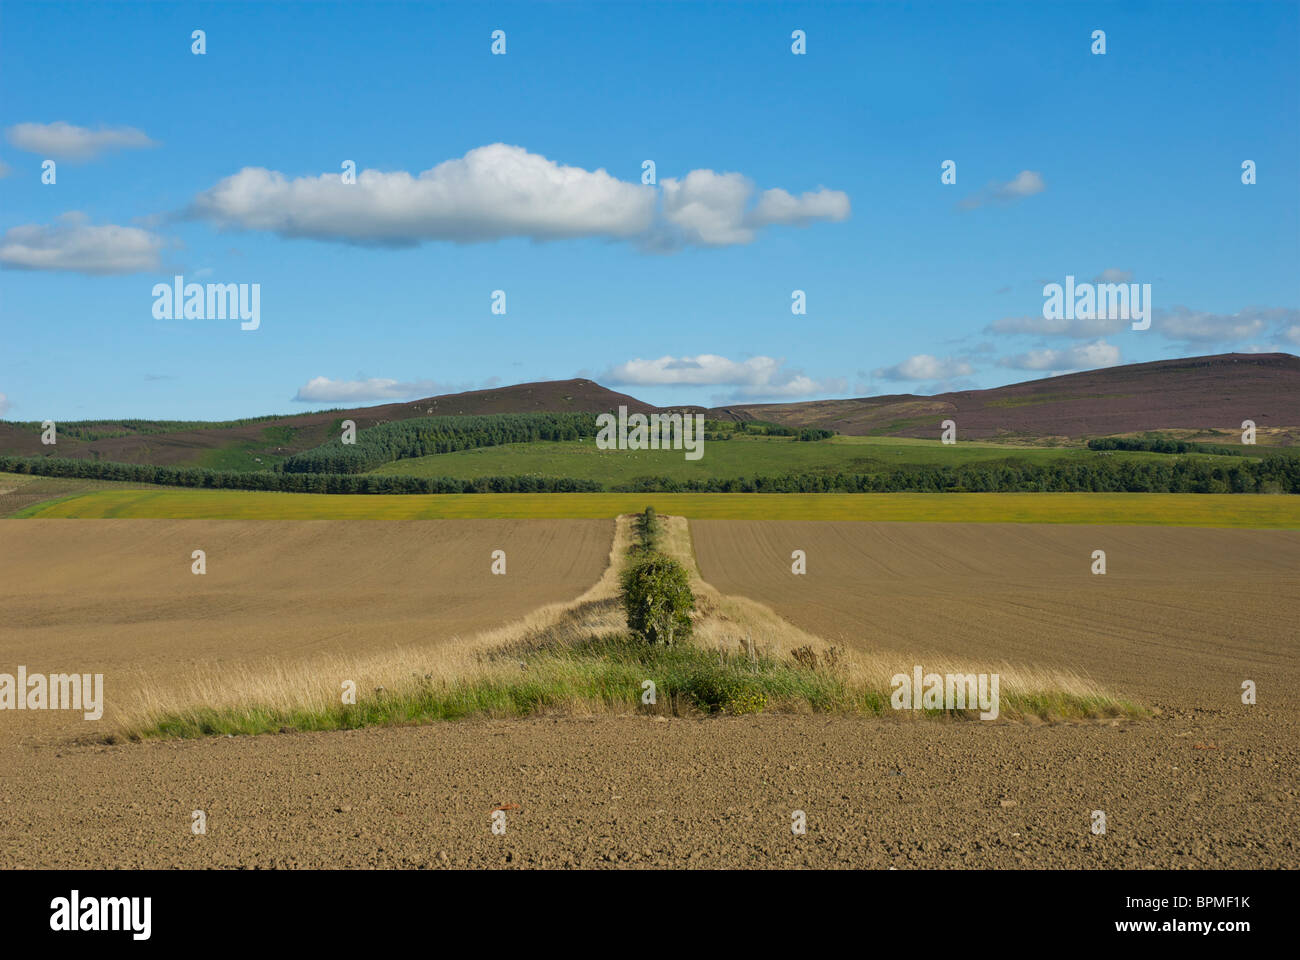 Field in the Scottish Borders, UK - Stock Image